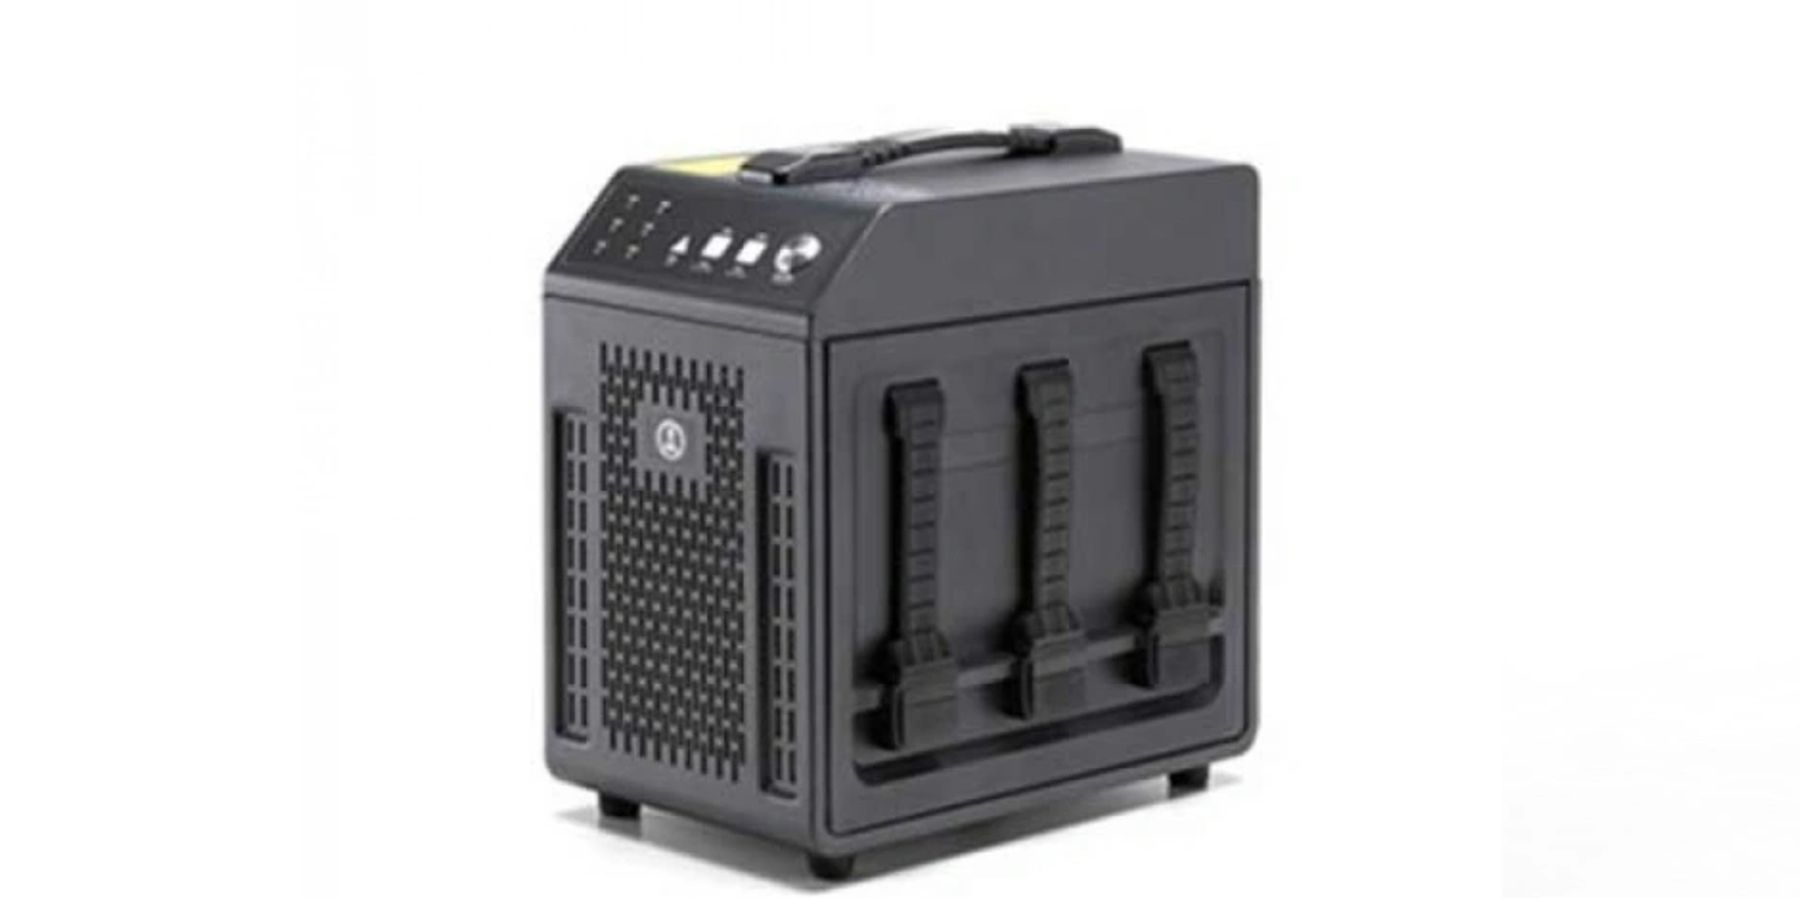 DJI Agras MG Series 6-Channel Intelligent Battery Charger.jpg